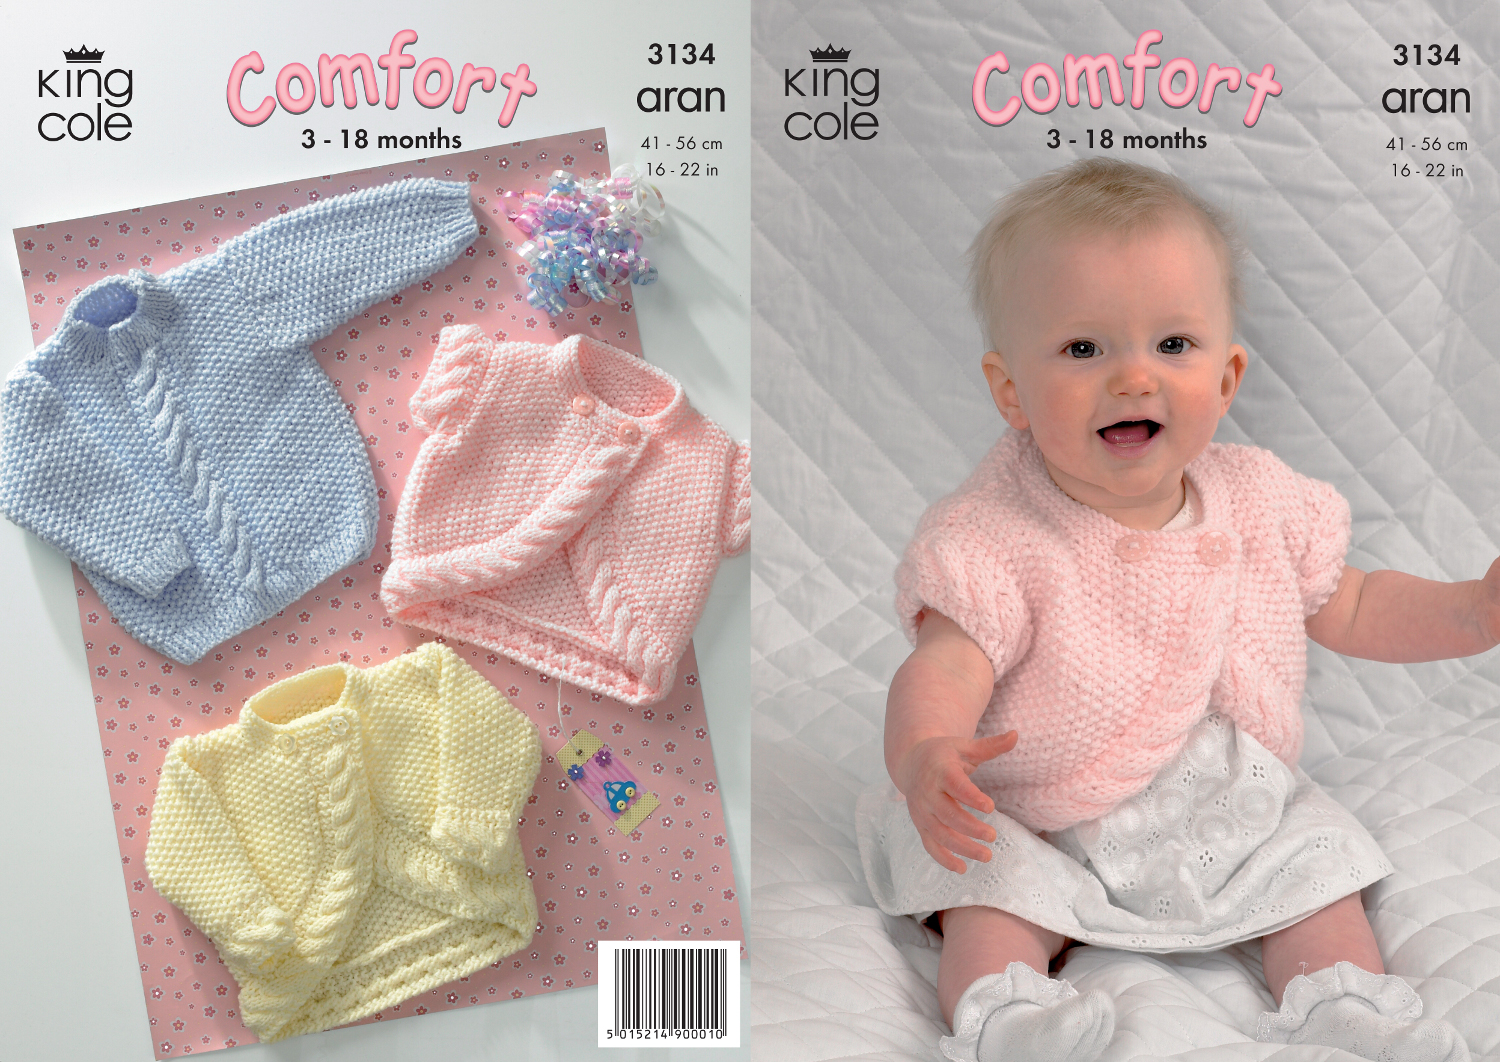 Baby comfort aran knitting pattern king cole knitted jacket bolero baby comfort aran knitting pattern king cole knitted jacket bolero sweater 3134 bankloansurffo Gallery